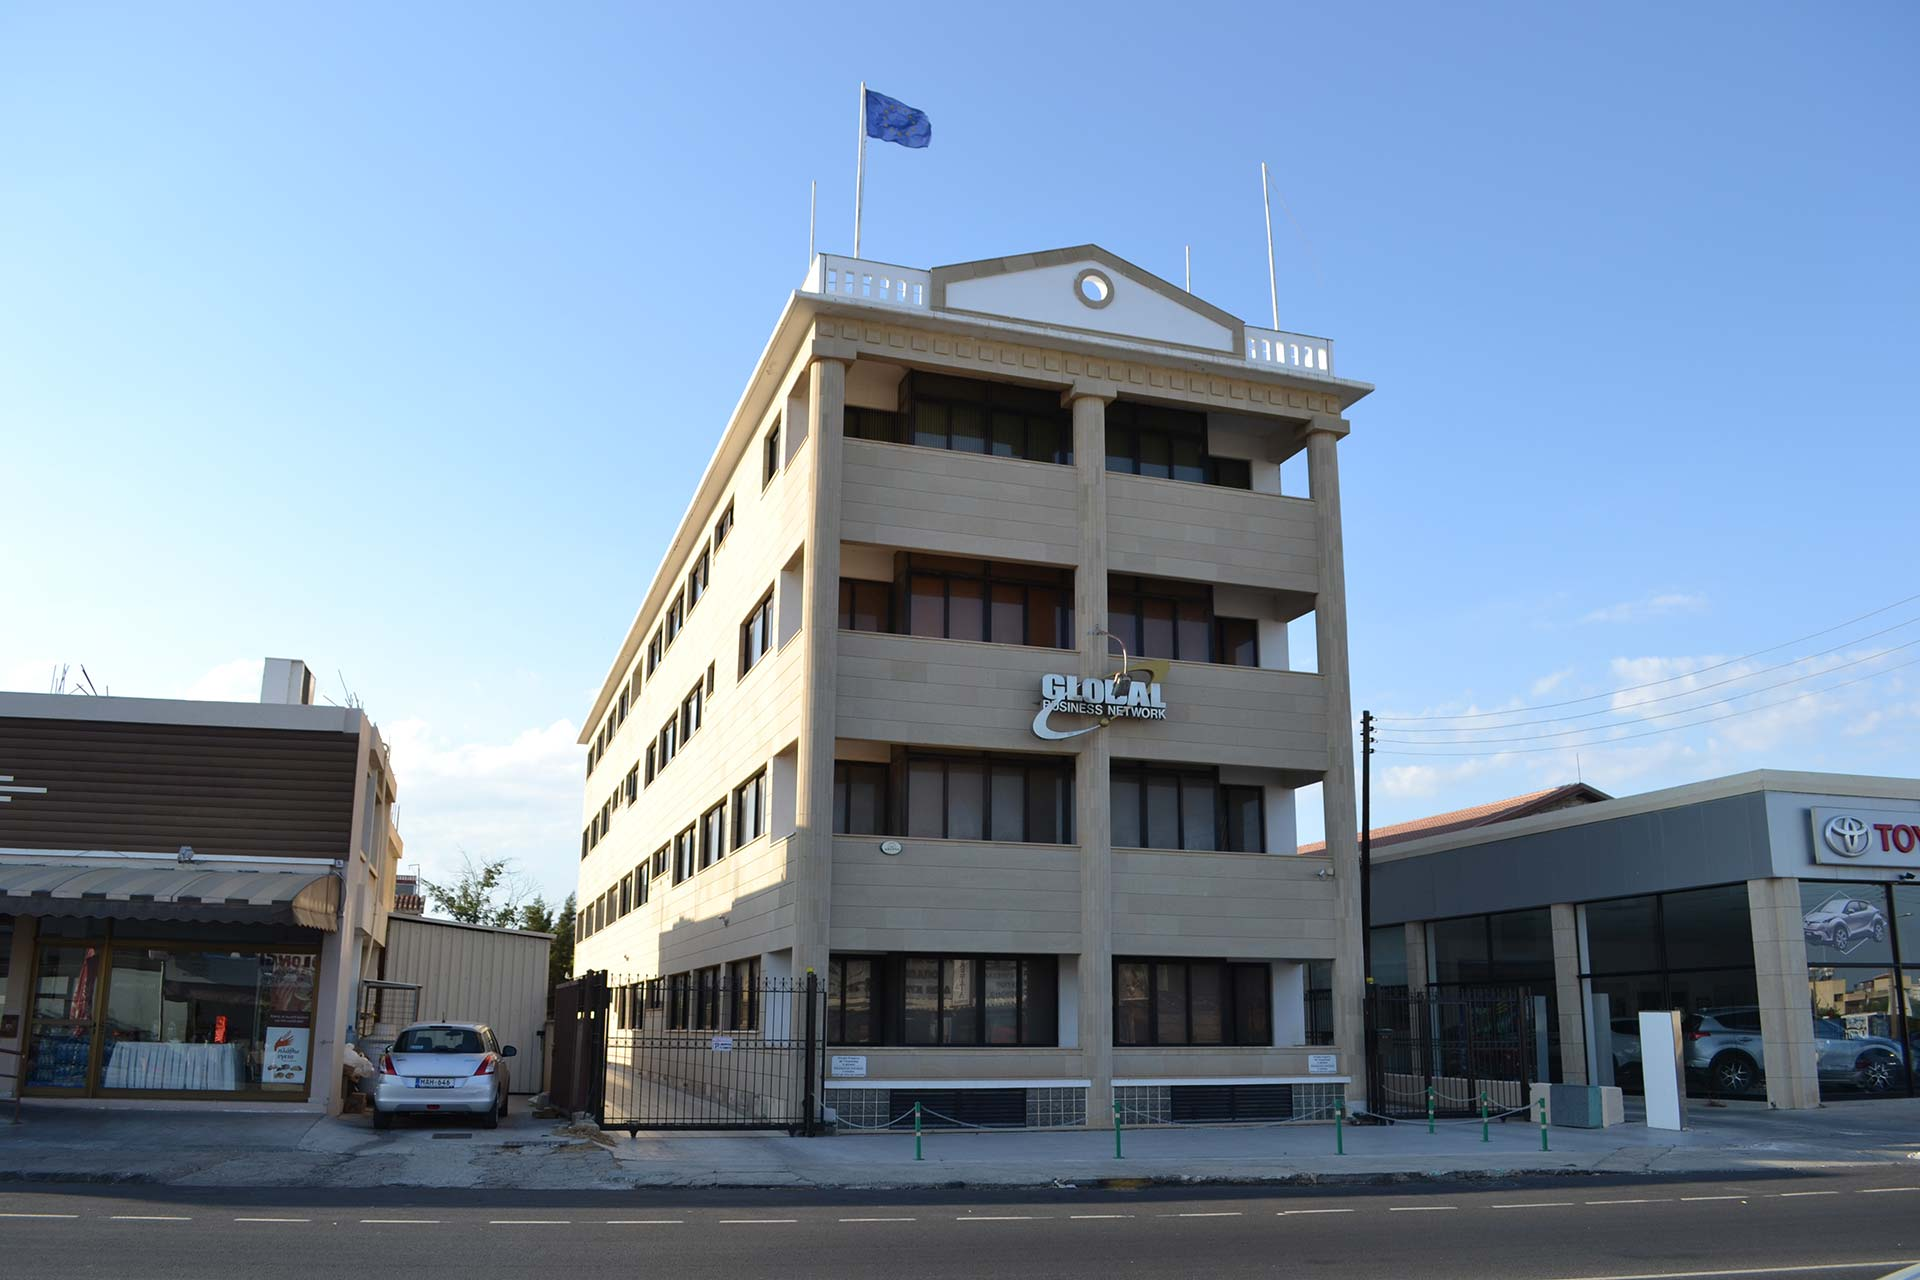 The GBNI offices in Limassol, Cyprus. Credit: Stelios Orphanides / Sara Farolfi